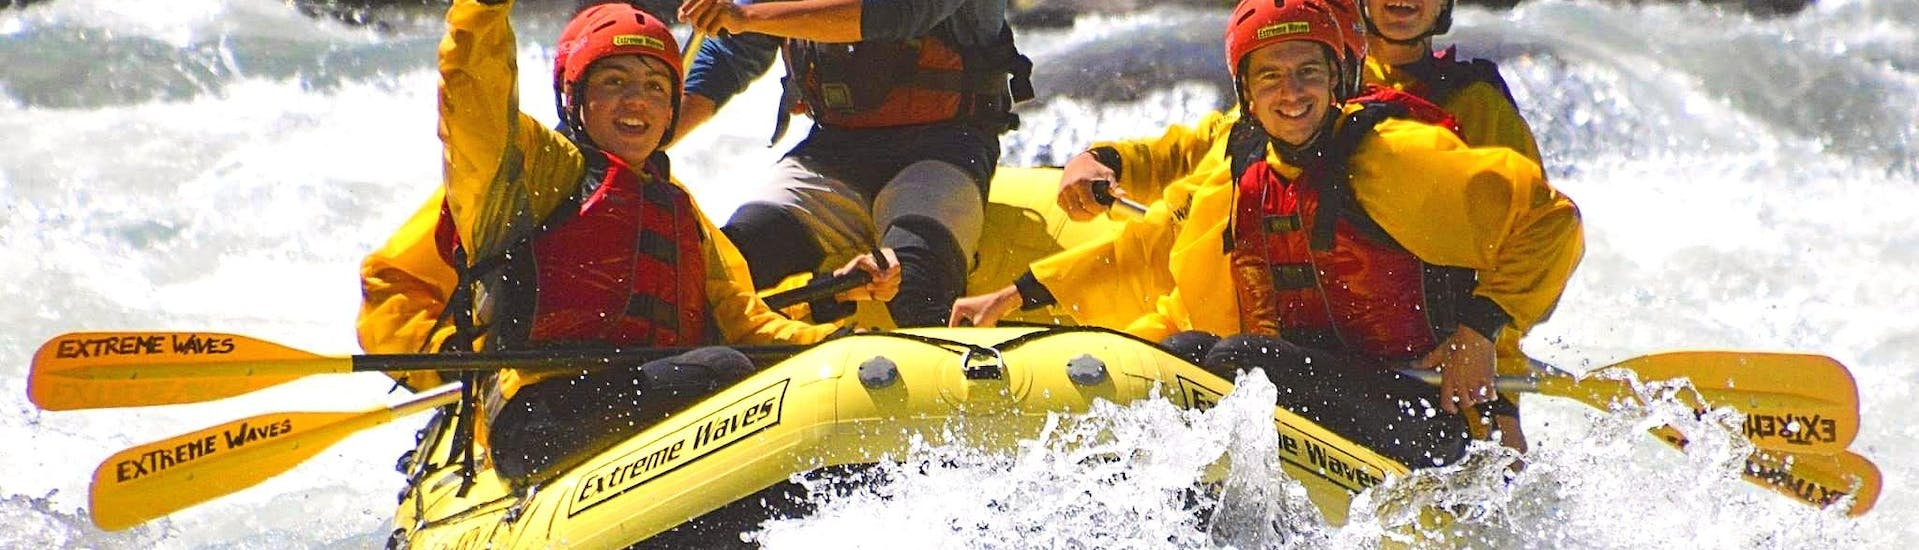 Rafting on the Noce for Families - Exciting